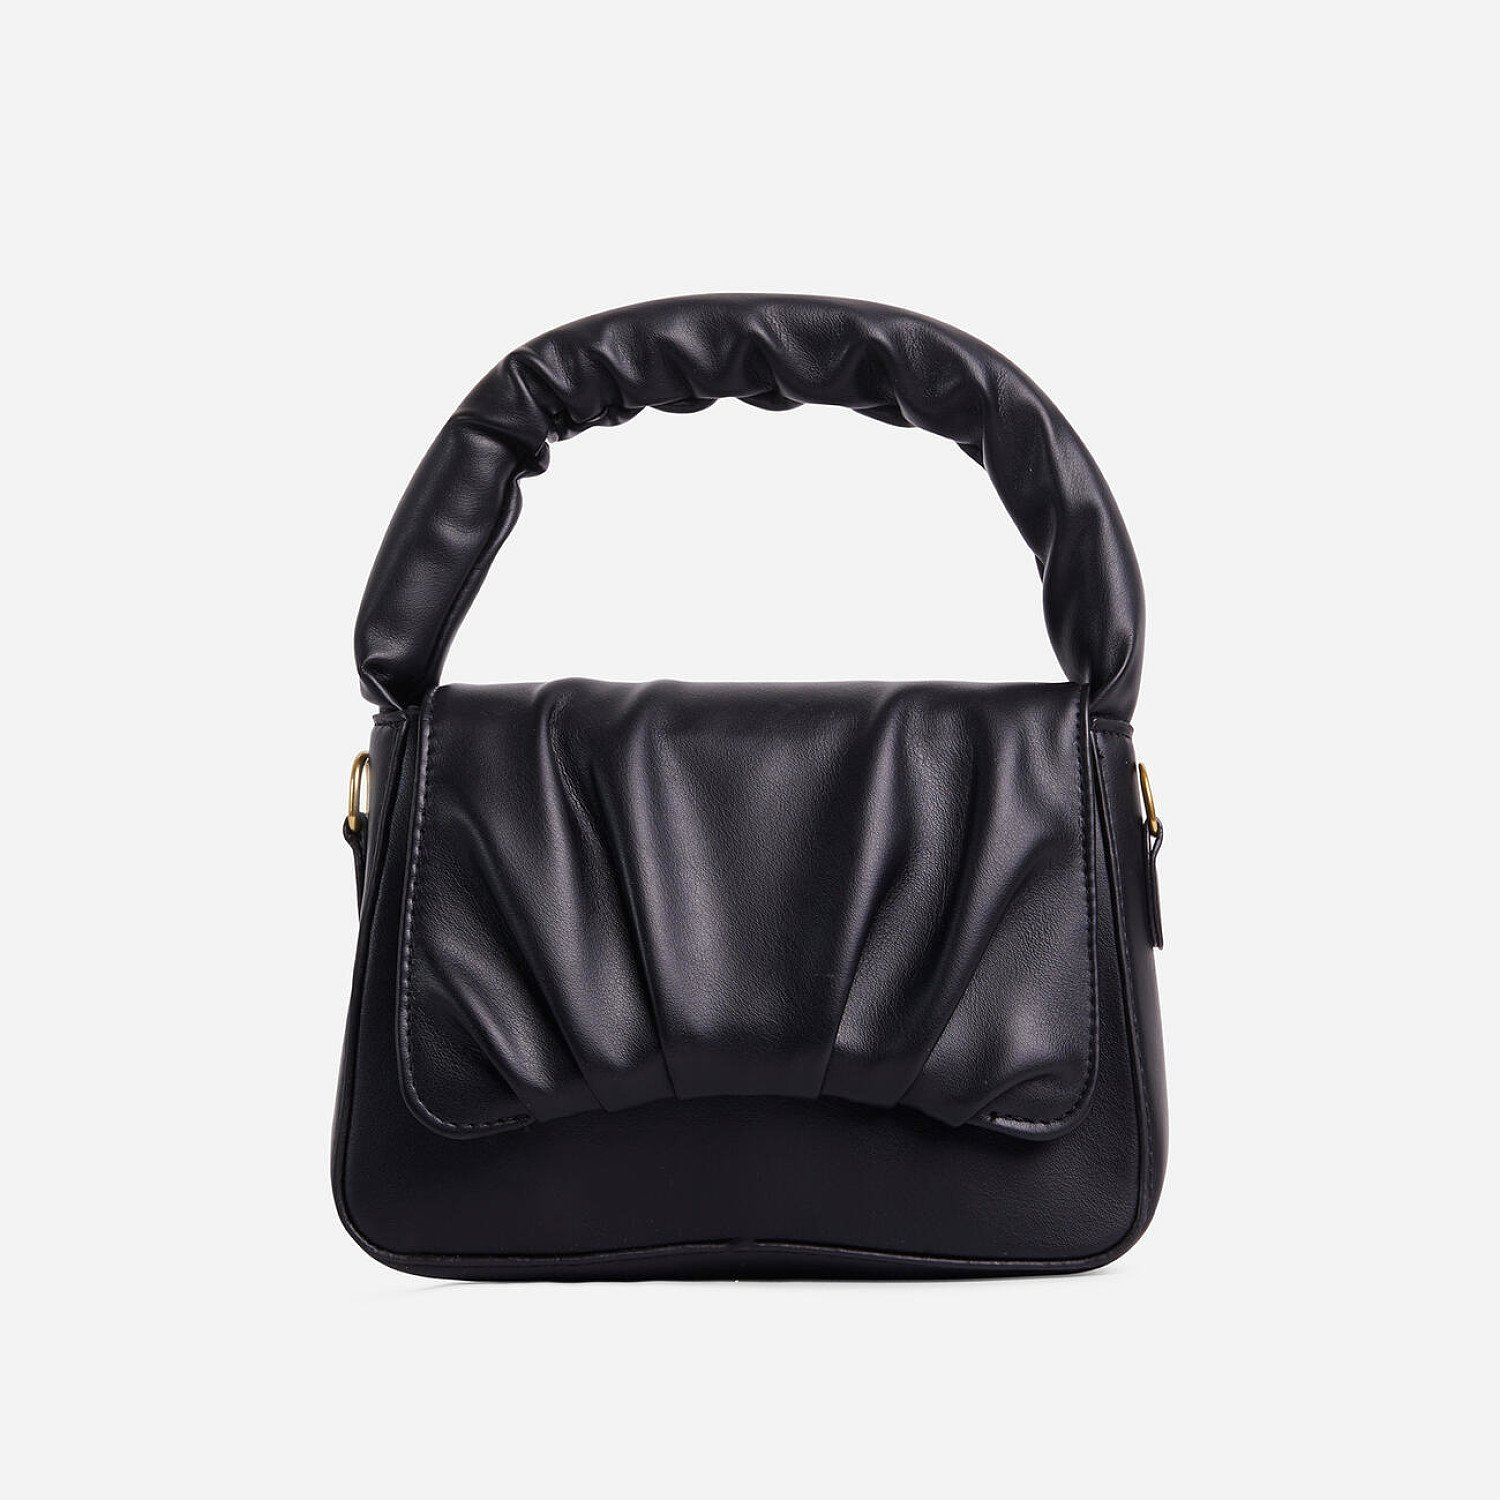 SAVE - Corra Ruched Detail Grab Bag In Black Faux Leather